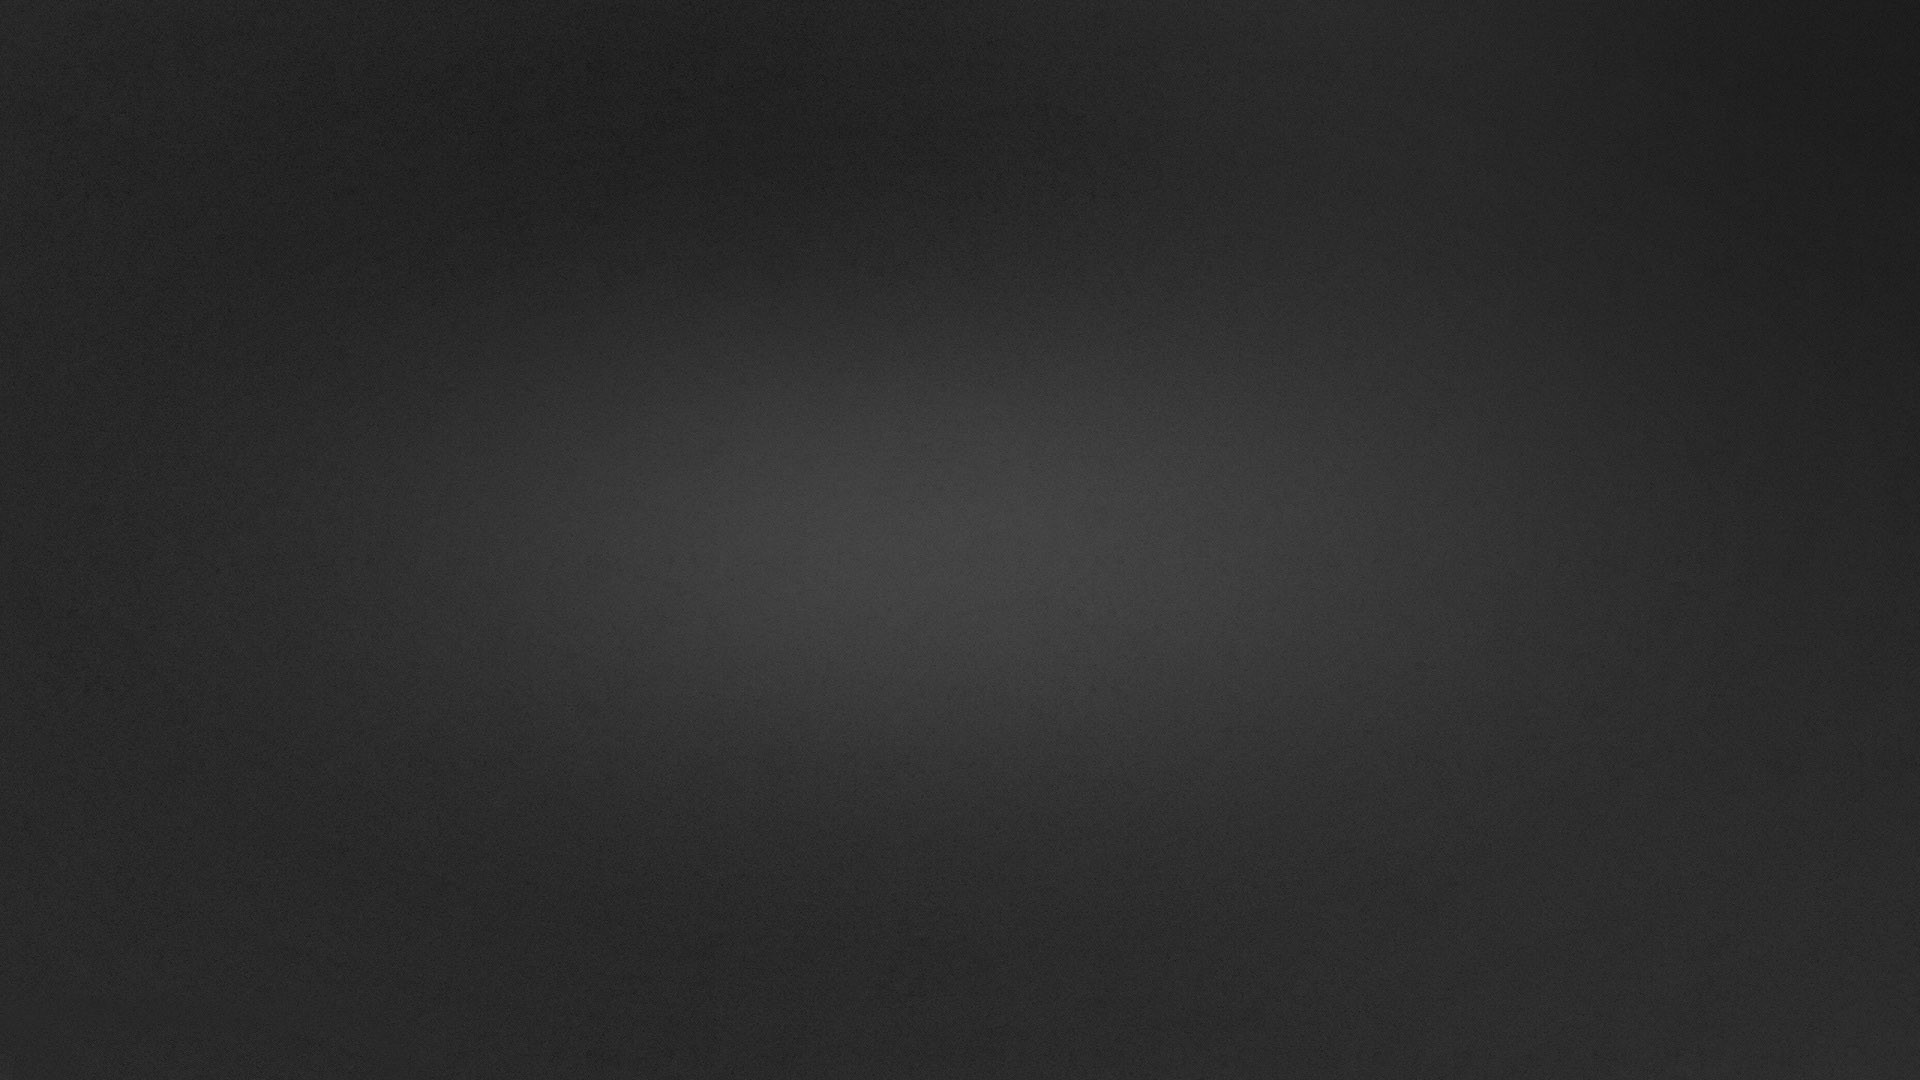 Black gradient background ·① Download free HD backgrounds